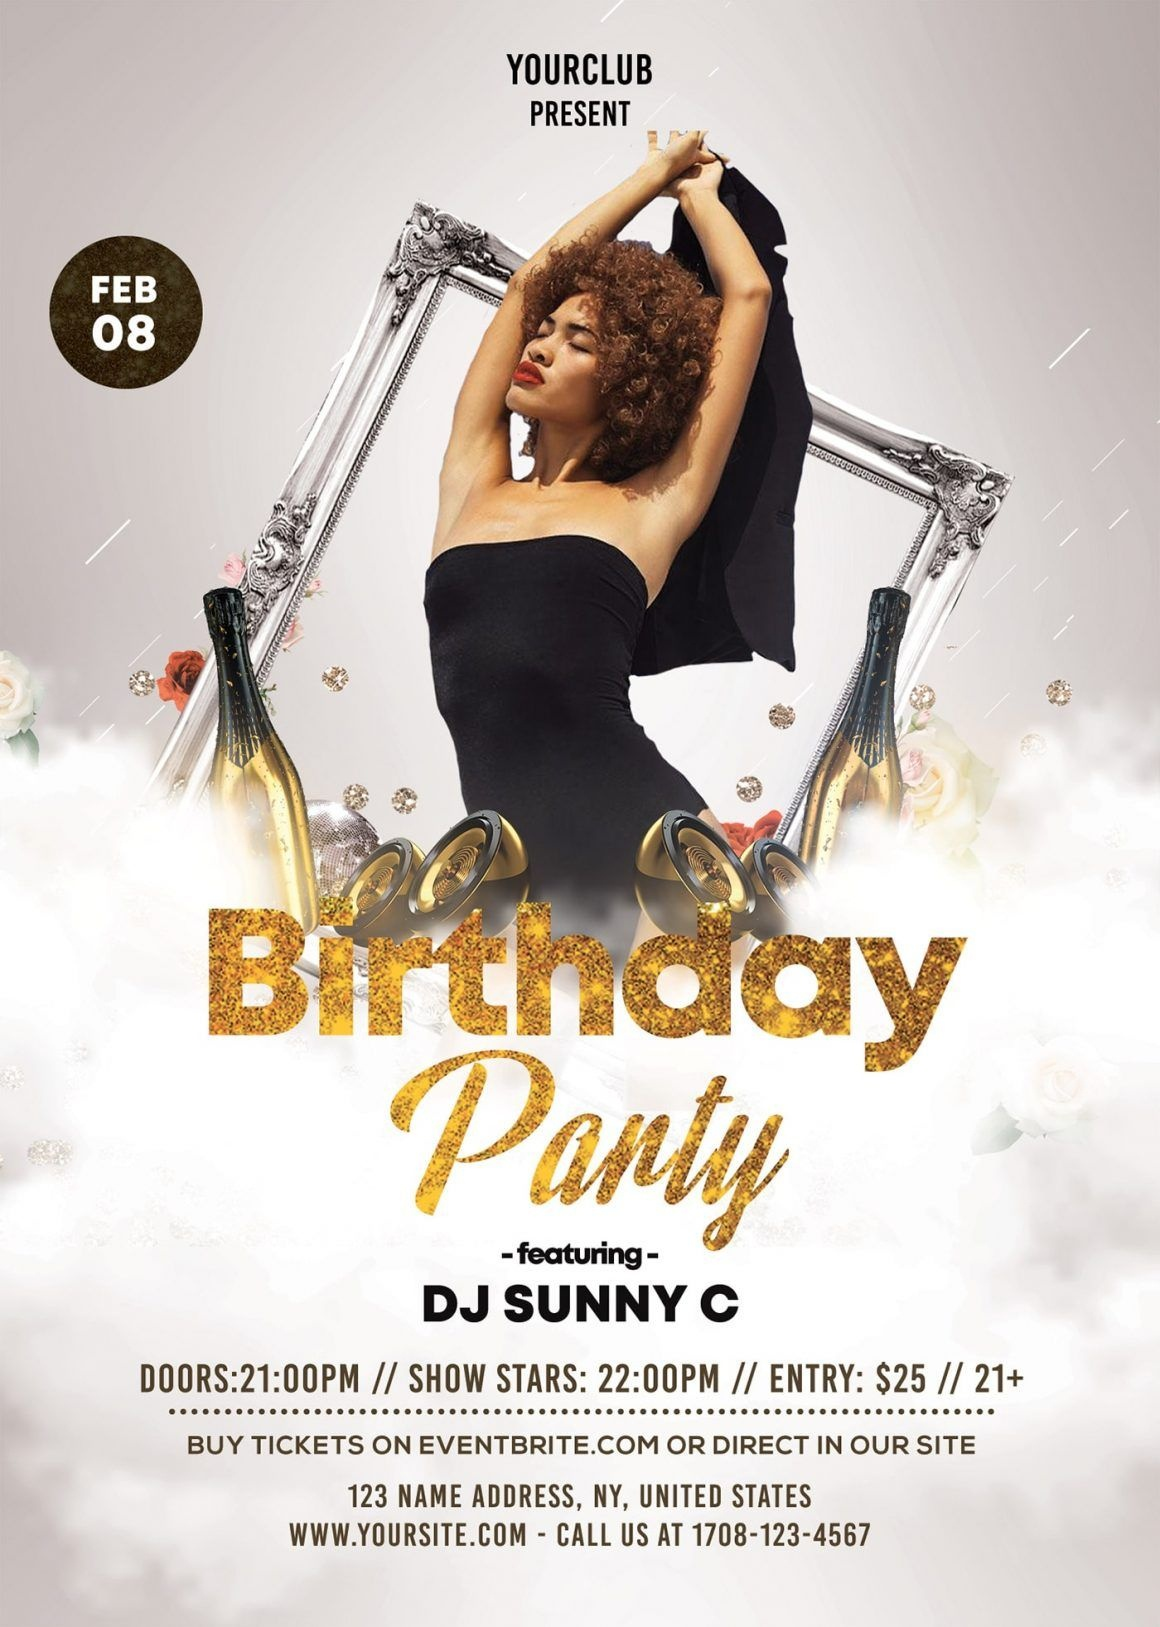 Birthday Party Free White & Gold Psd Flyer Template | Free Psd - Pool Party Flyers Free Printable